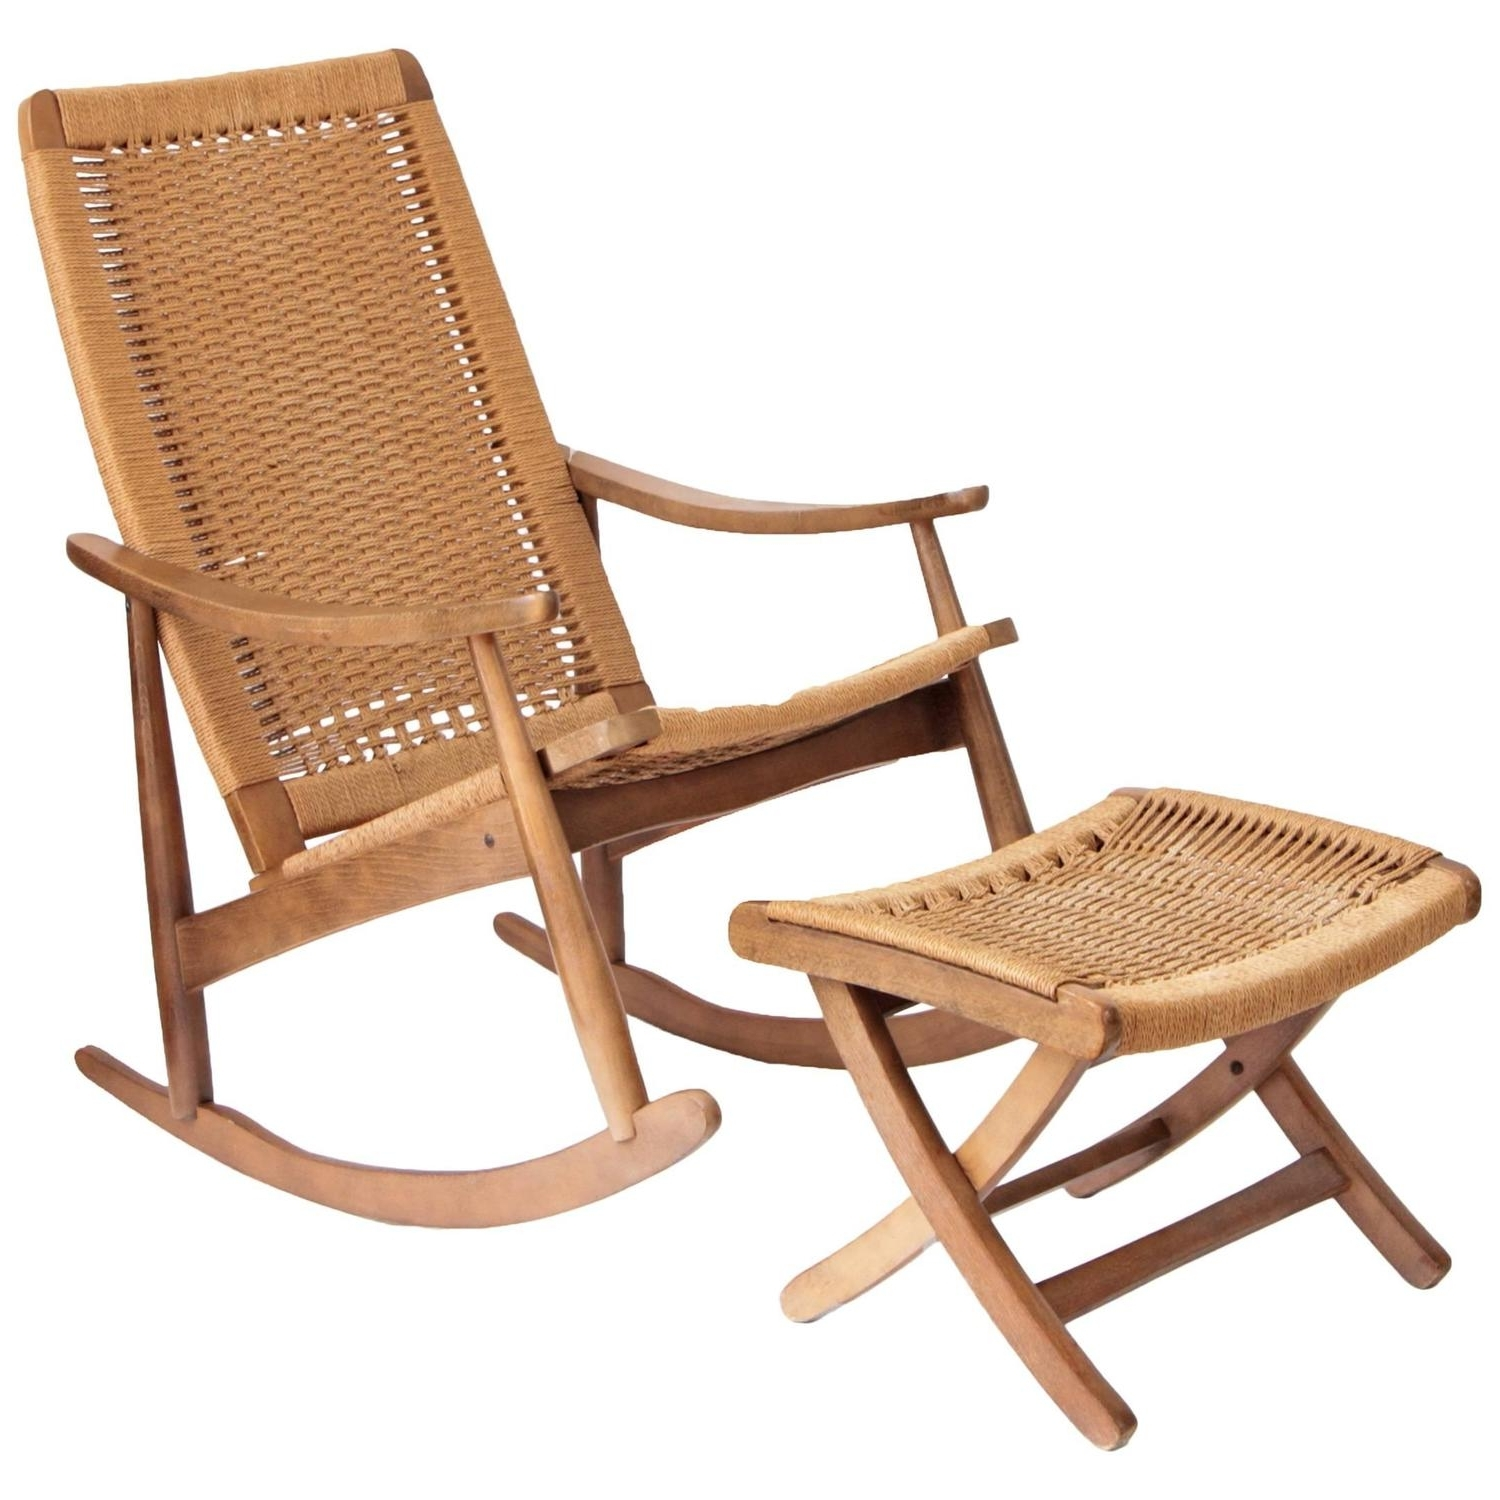 Most Popular Woven Rope Mid Century Modern Rocking Chair And Ottoman At 1stdibs Pertaining To Wicker Rocking Chairs And Ottoman (View 3 of 15)